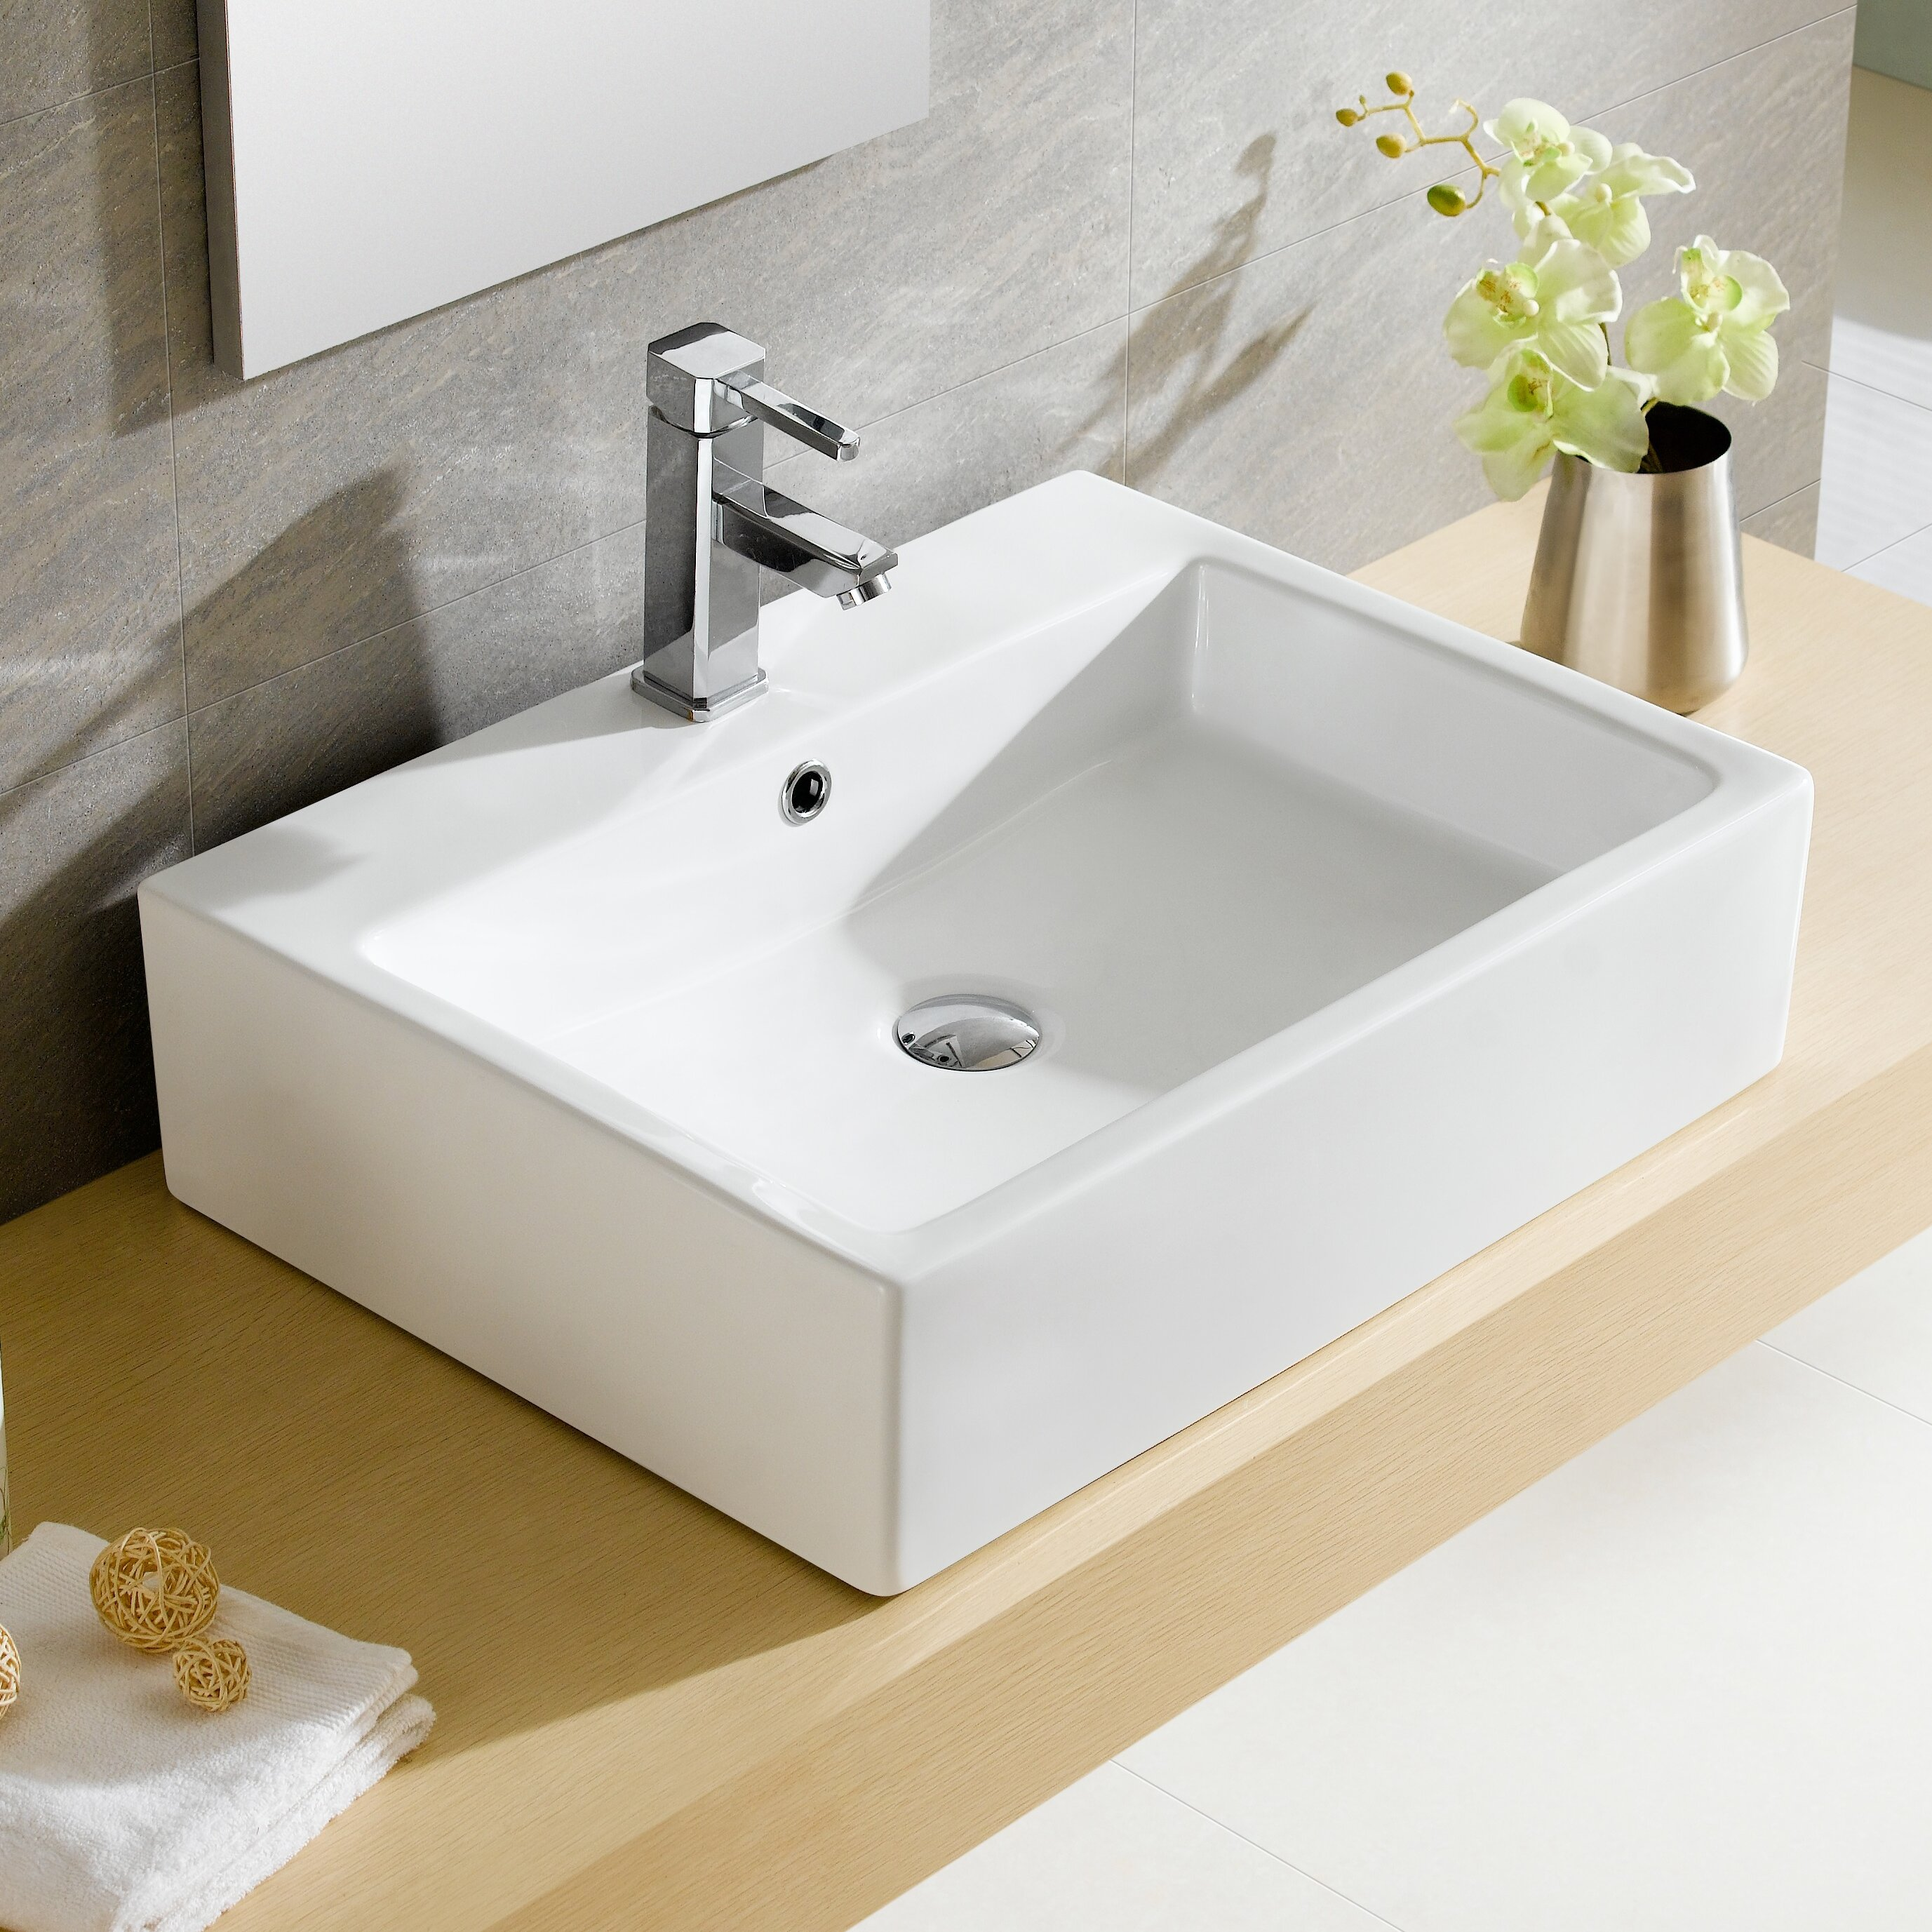 Fine Fixtures Modern Vitreous Rectangular Vessel Bathroom Sink with Overflow